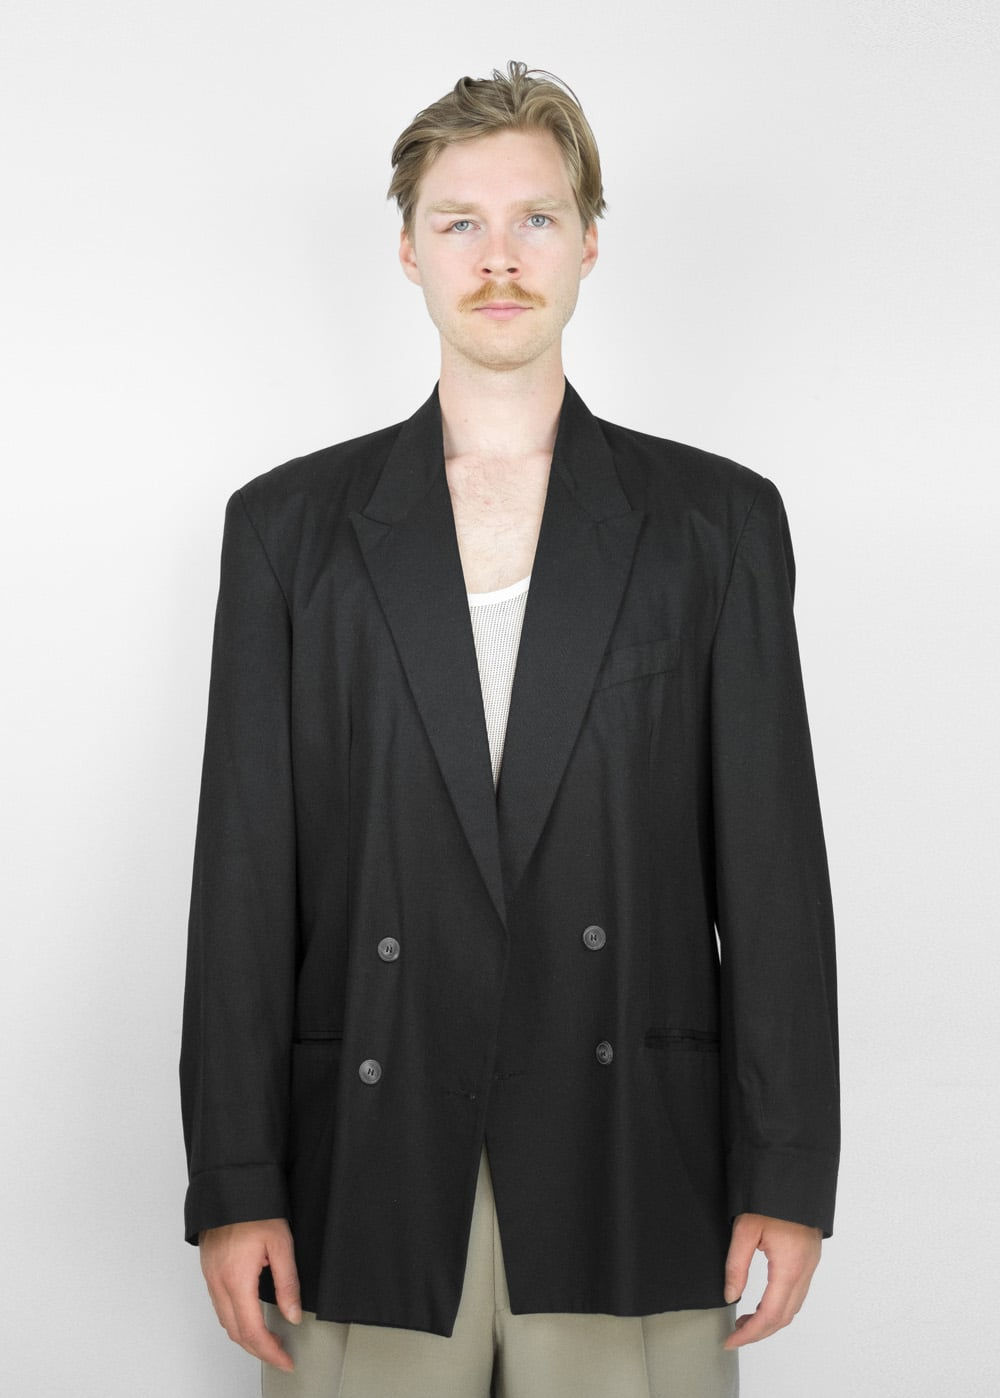 90s Black Suit Jacket 113